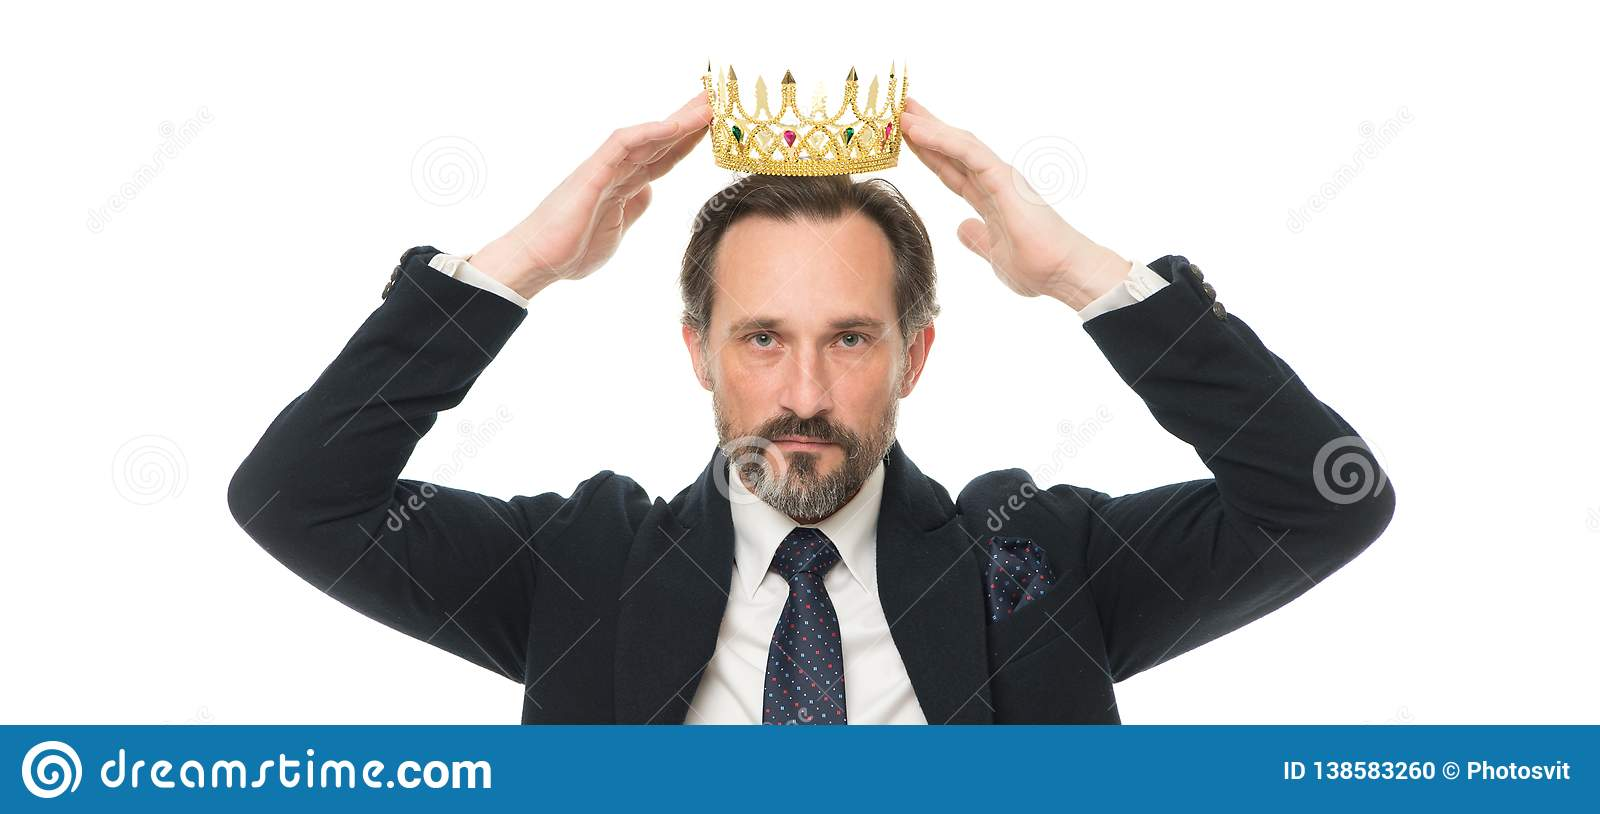 Monarchy family traditions. Man nature bearded guy in suit hold golden crown symbol of monarchy. Direct line to throne